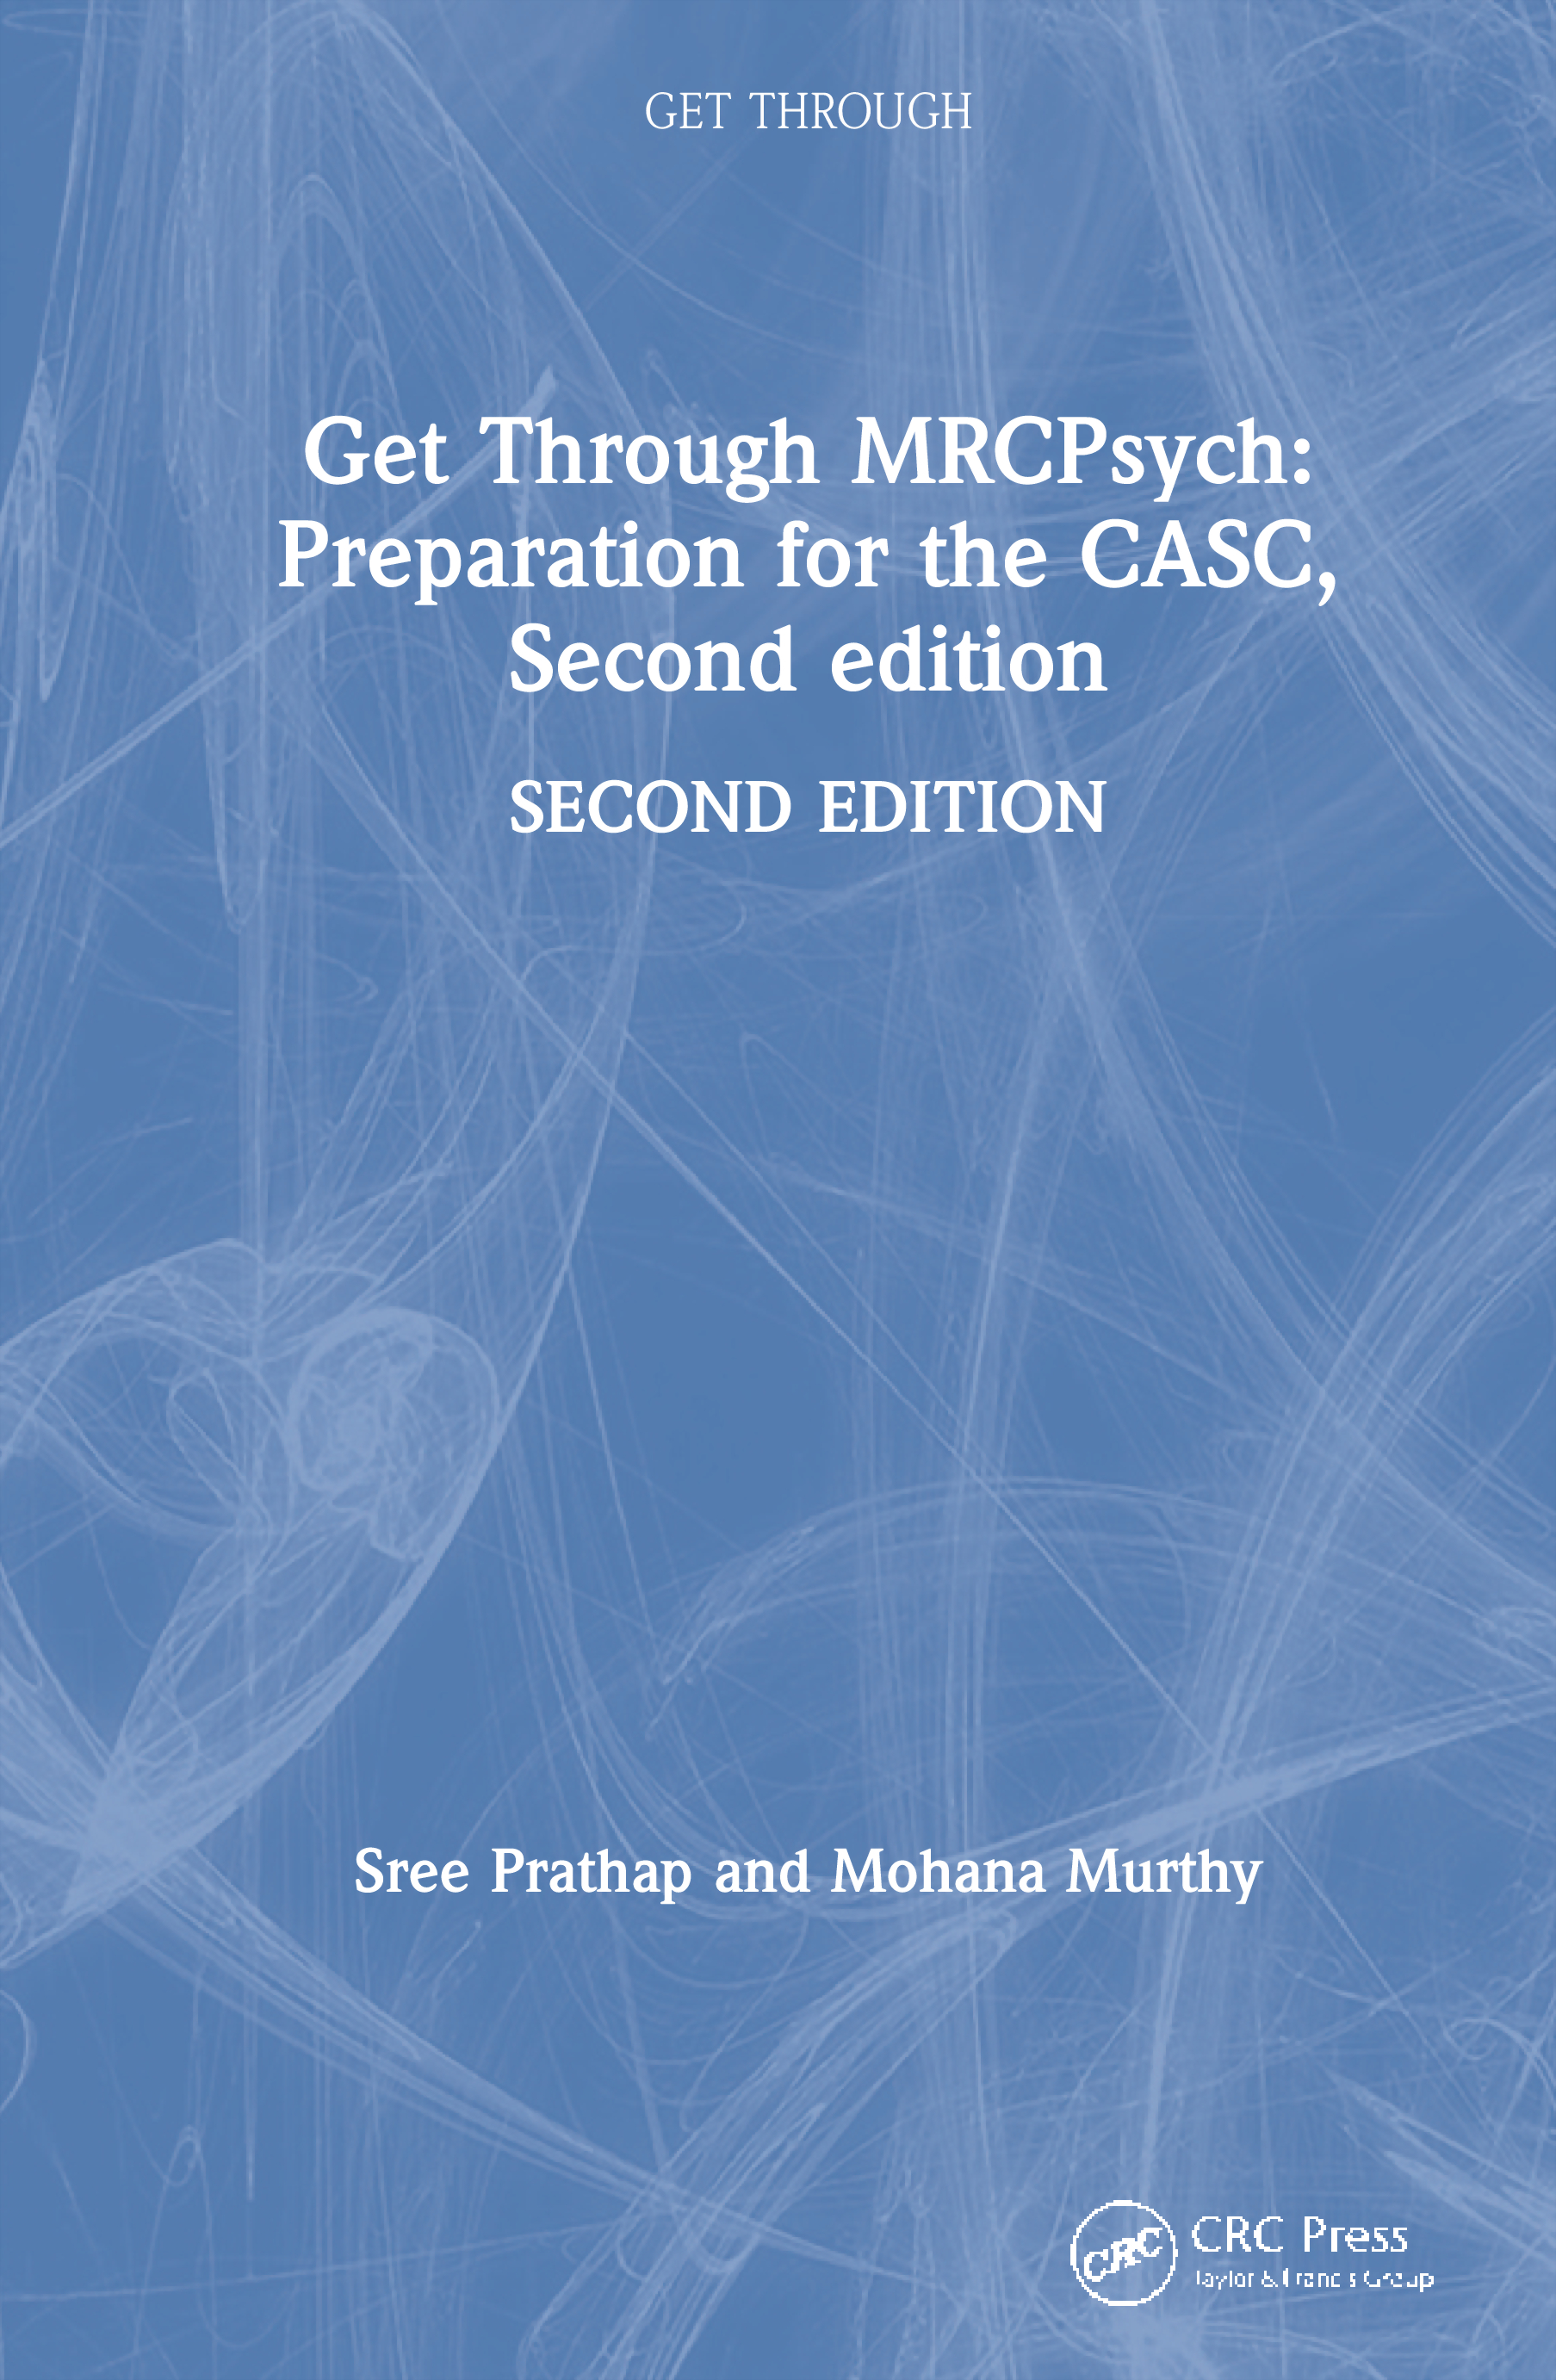 Get Through MRCPsych: Preparation for the CASC, Second edition: 2nd Edition (Hardback) book cover